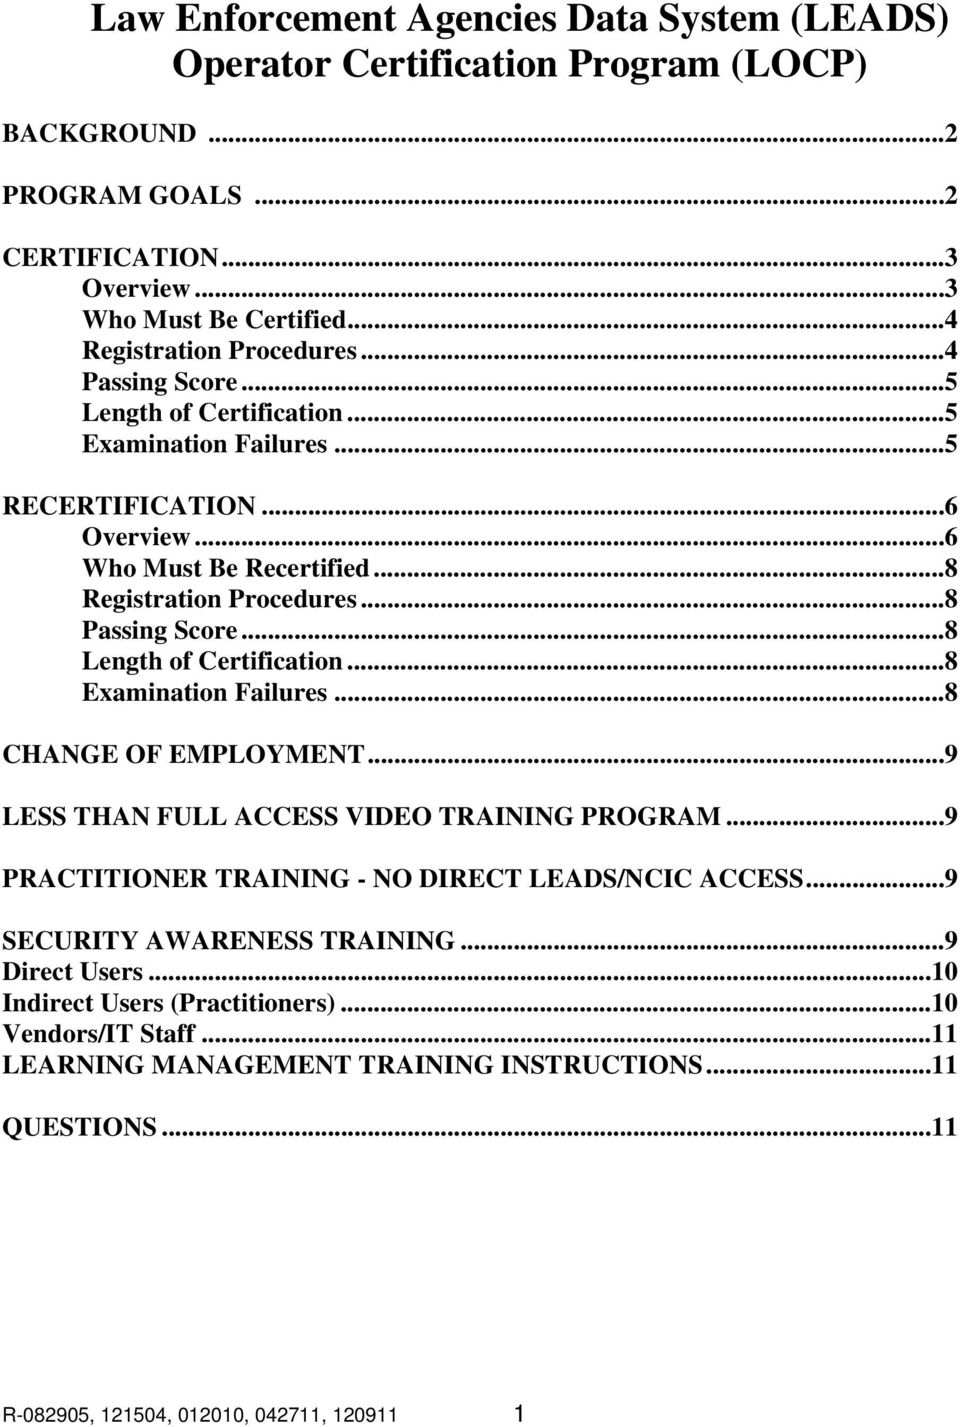 Law Enforcement Agencies Data System Leads Operator Certification